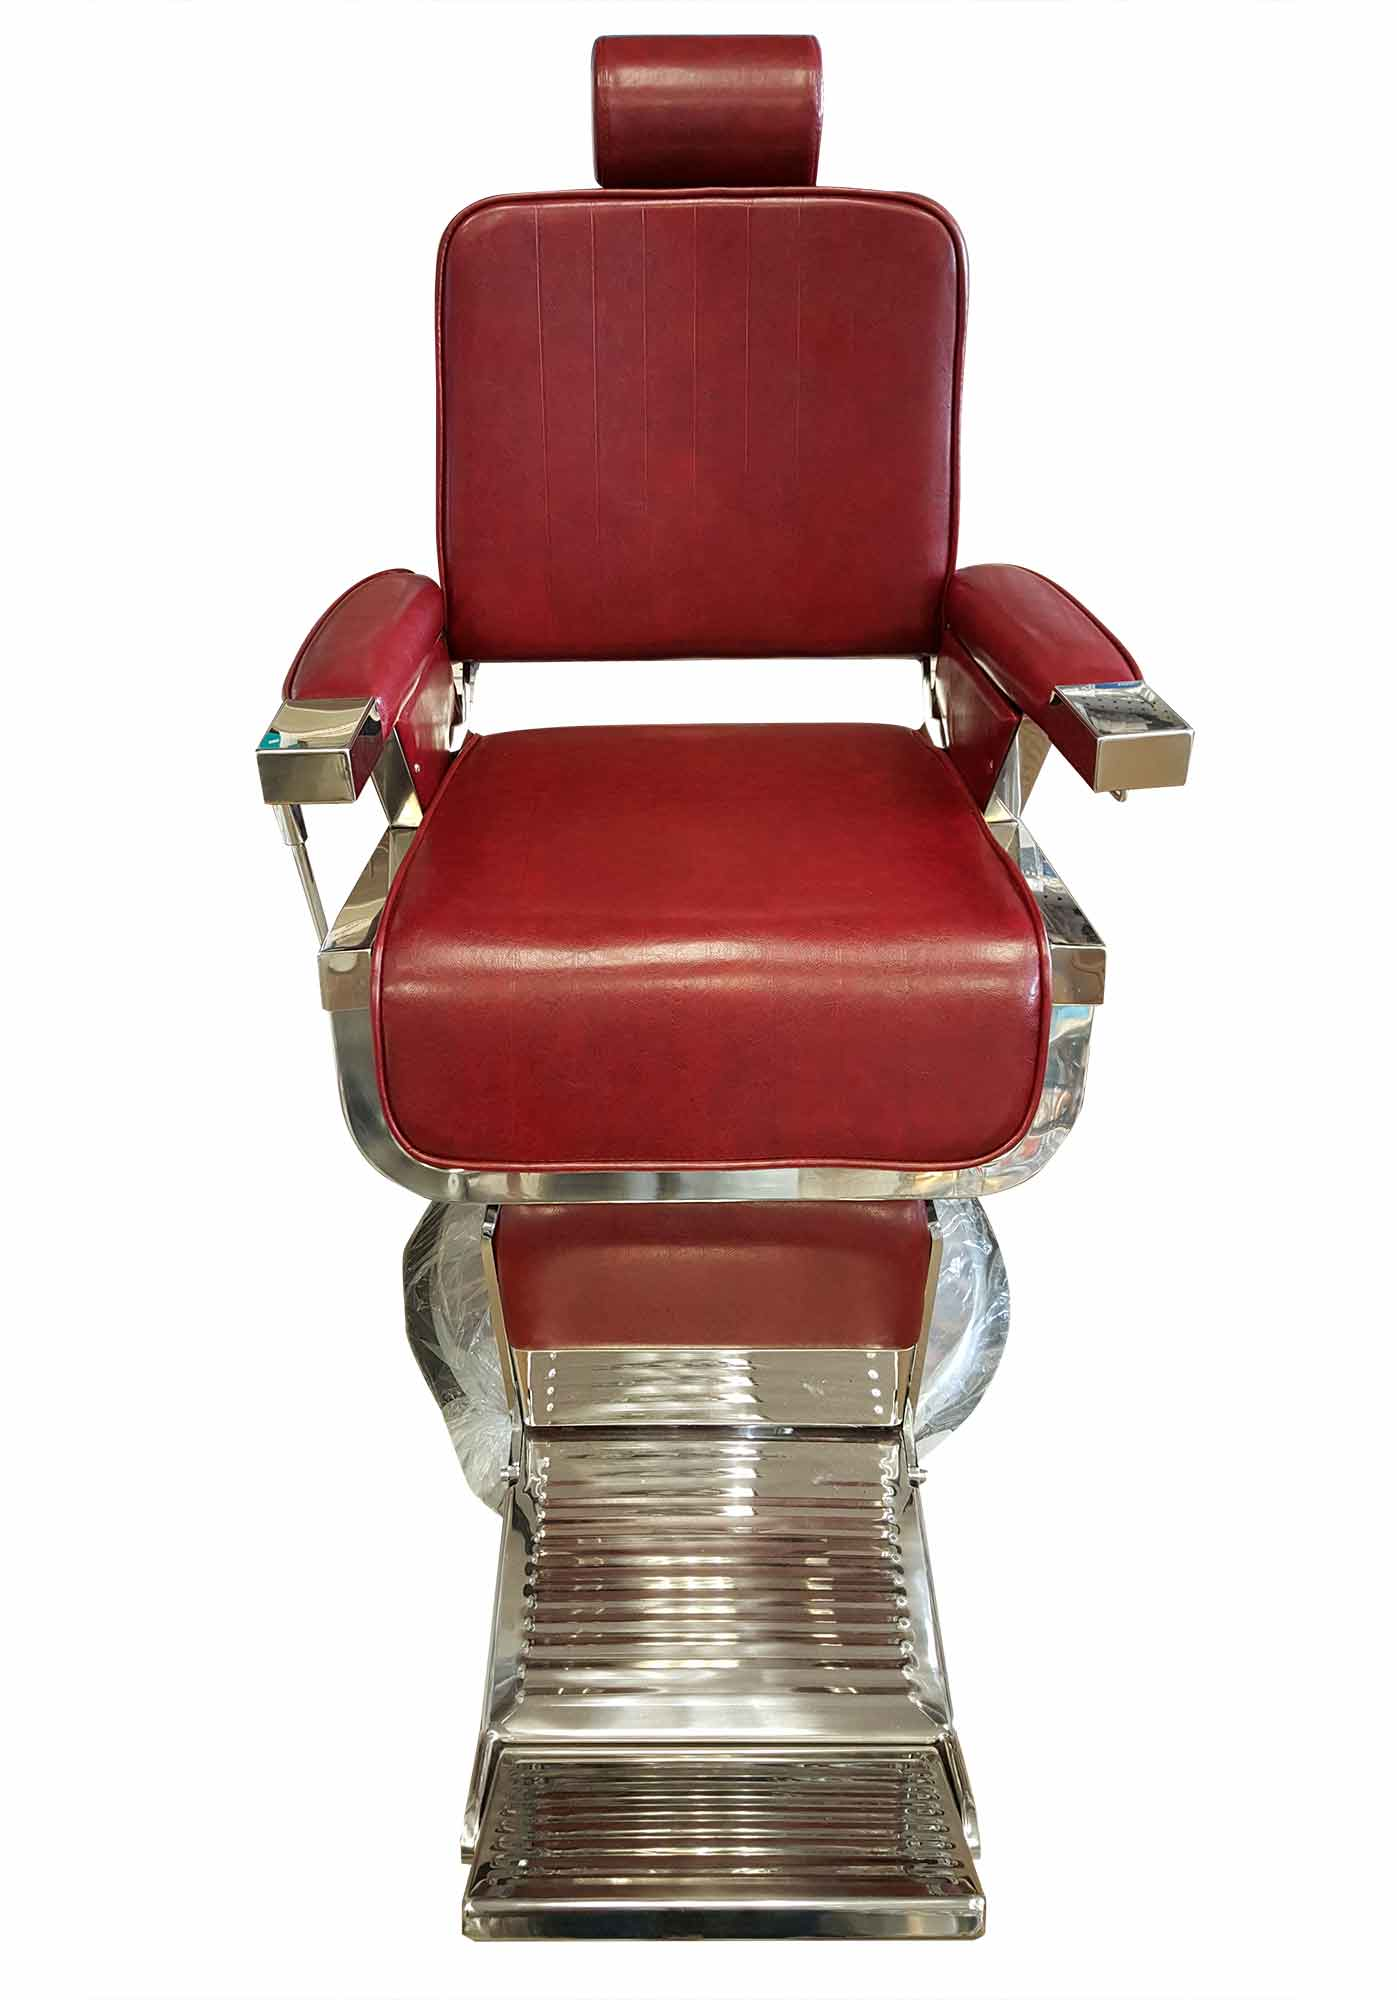 Hydraulic Barber Chair #XZ-31819 - Barber Depot